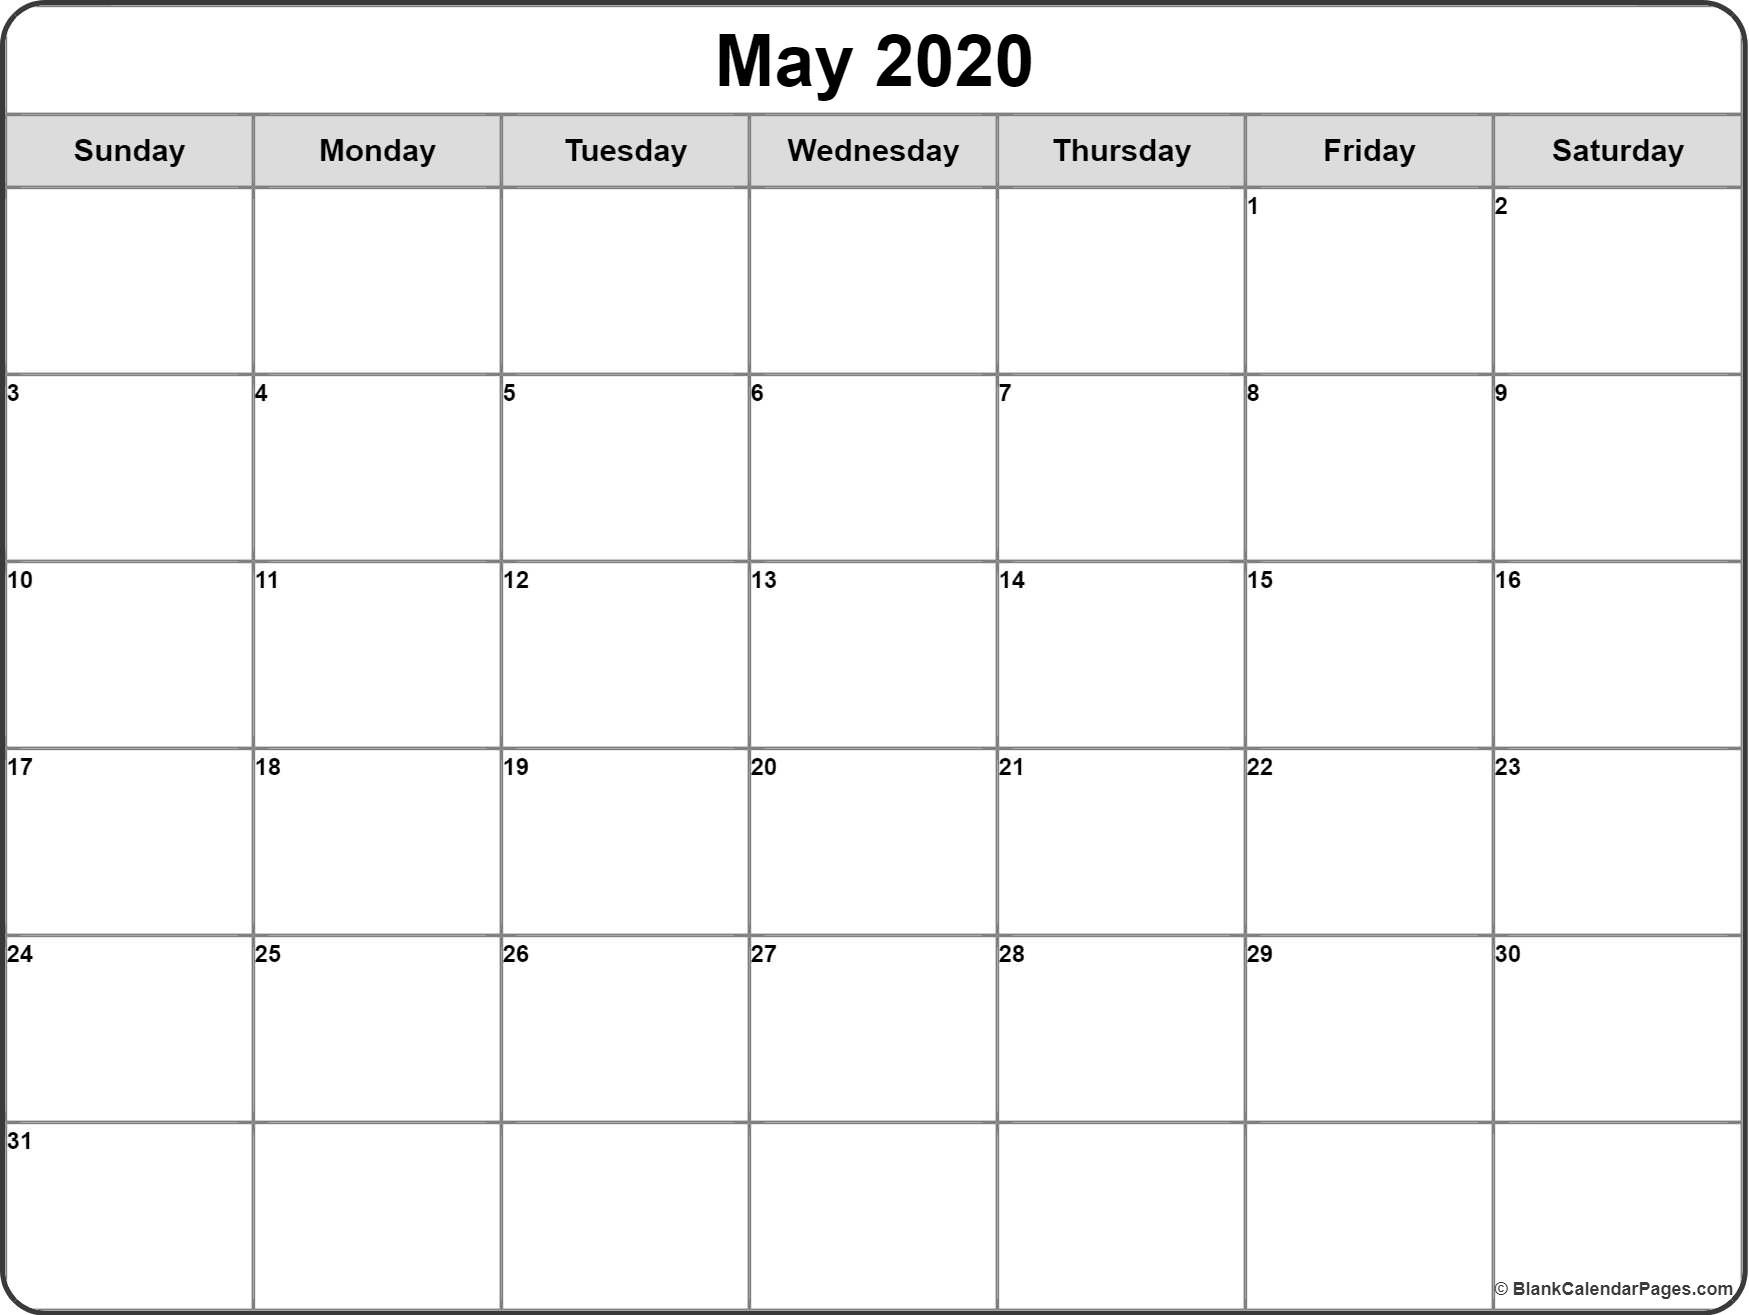 May 2020 Calendar | Free Printable Monthly Calendars  Printable 2020 Full Page Monthly Calendar